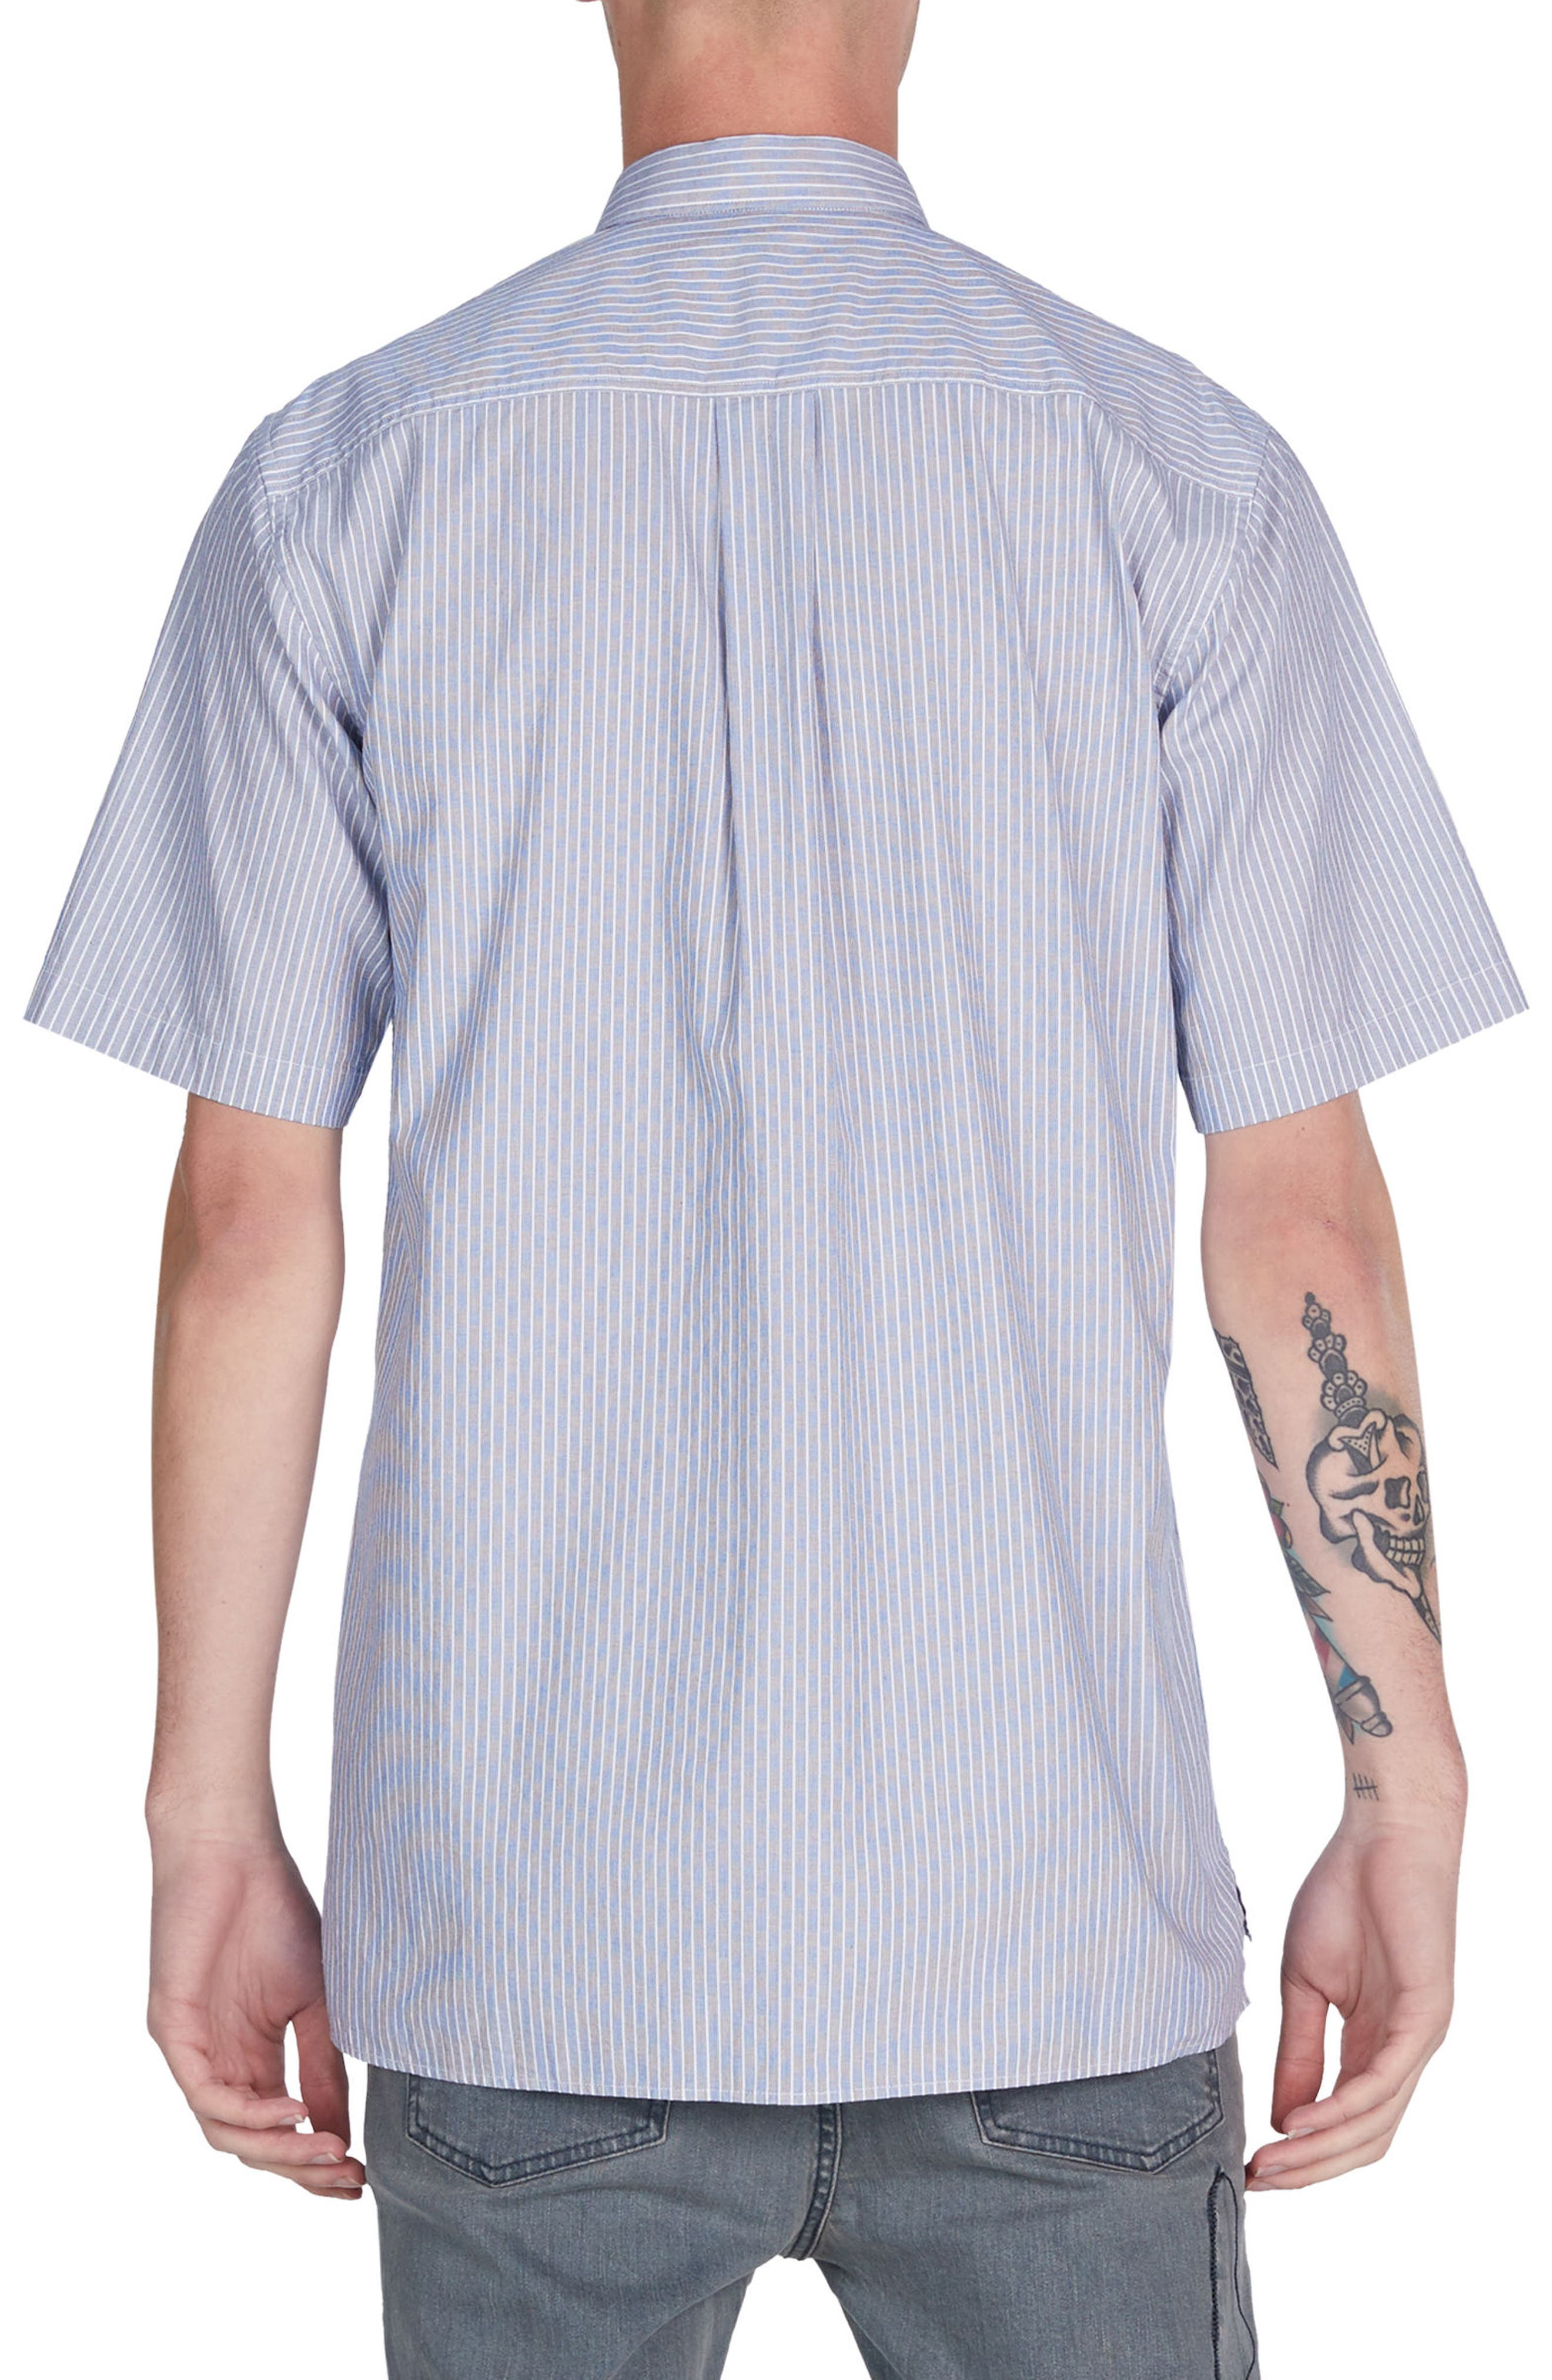 Stripe Box Shirt,                             Alternate thumbnail 2, color,                             Blue/ White